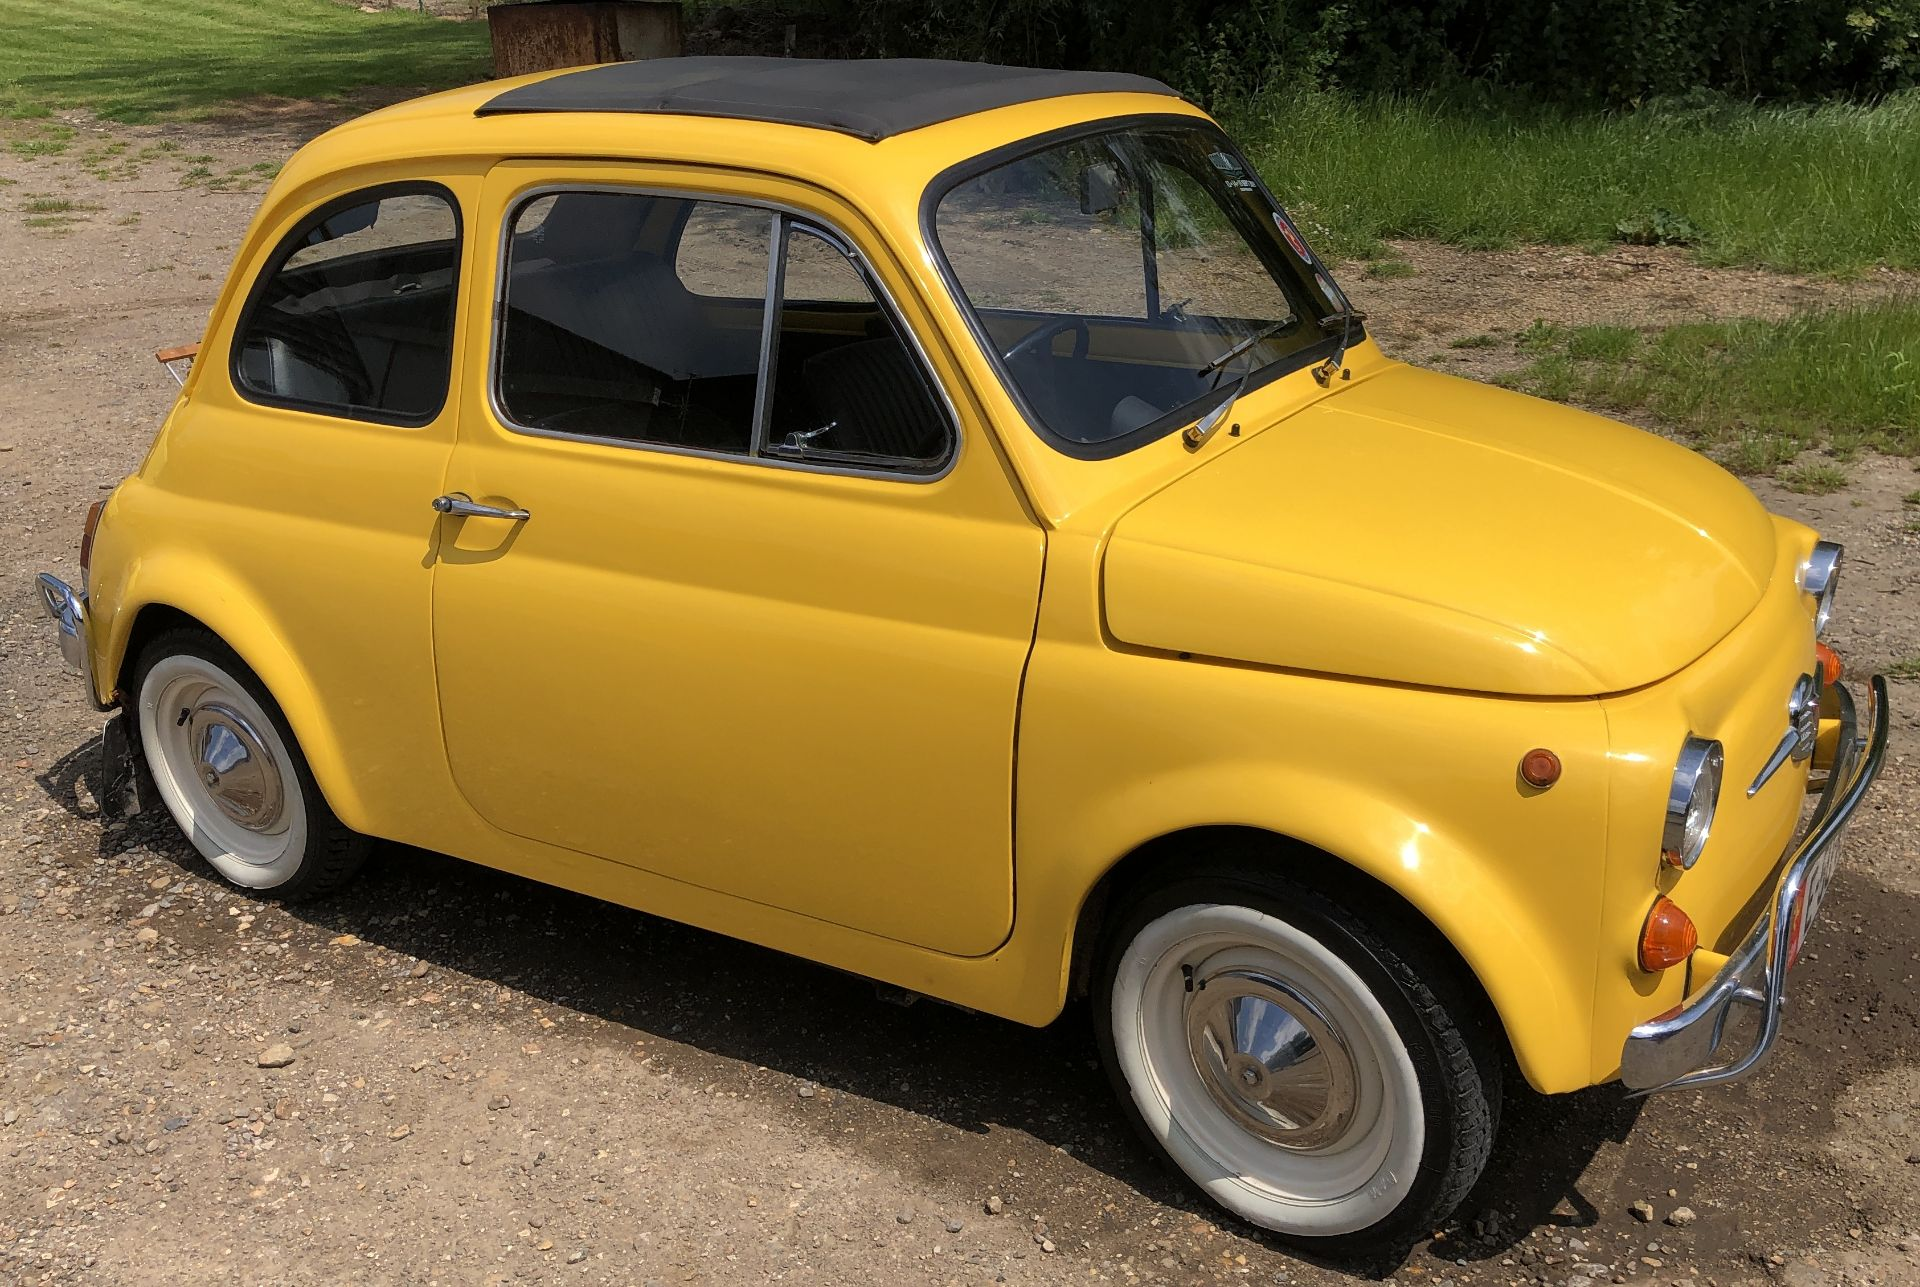 1972 Fiat 500 Saloon, Registration E-50-Man (IOM, Formally Registered as TGF 249L), First Registered - Image 2 of 34